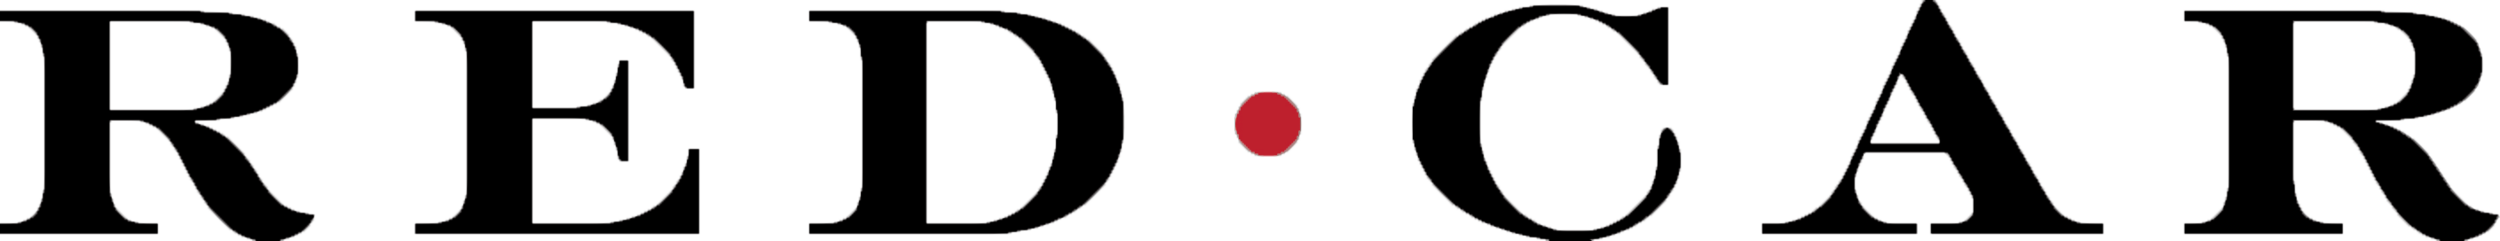 Red Car Winery-logo No Background_BLACK FONT.png